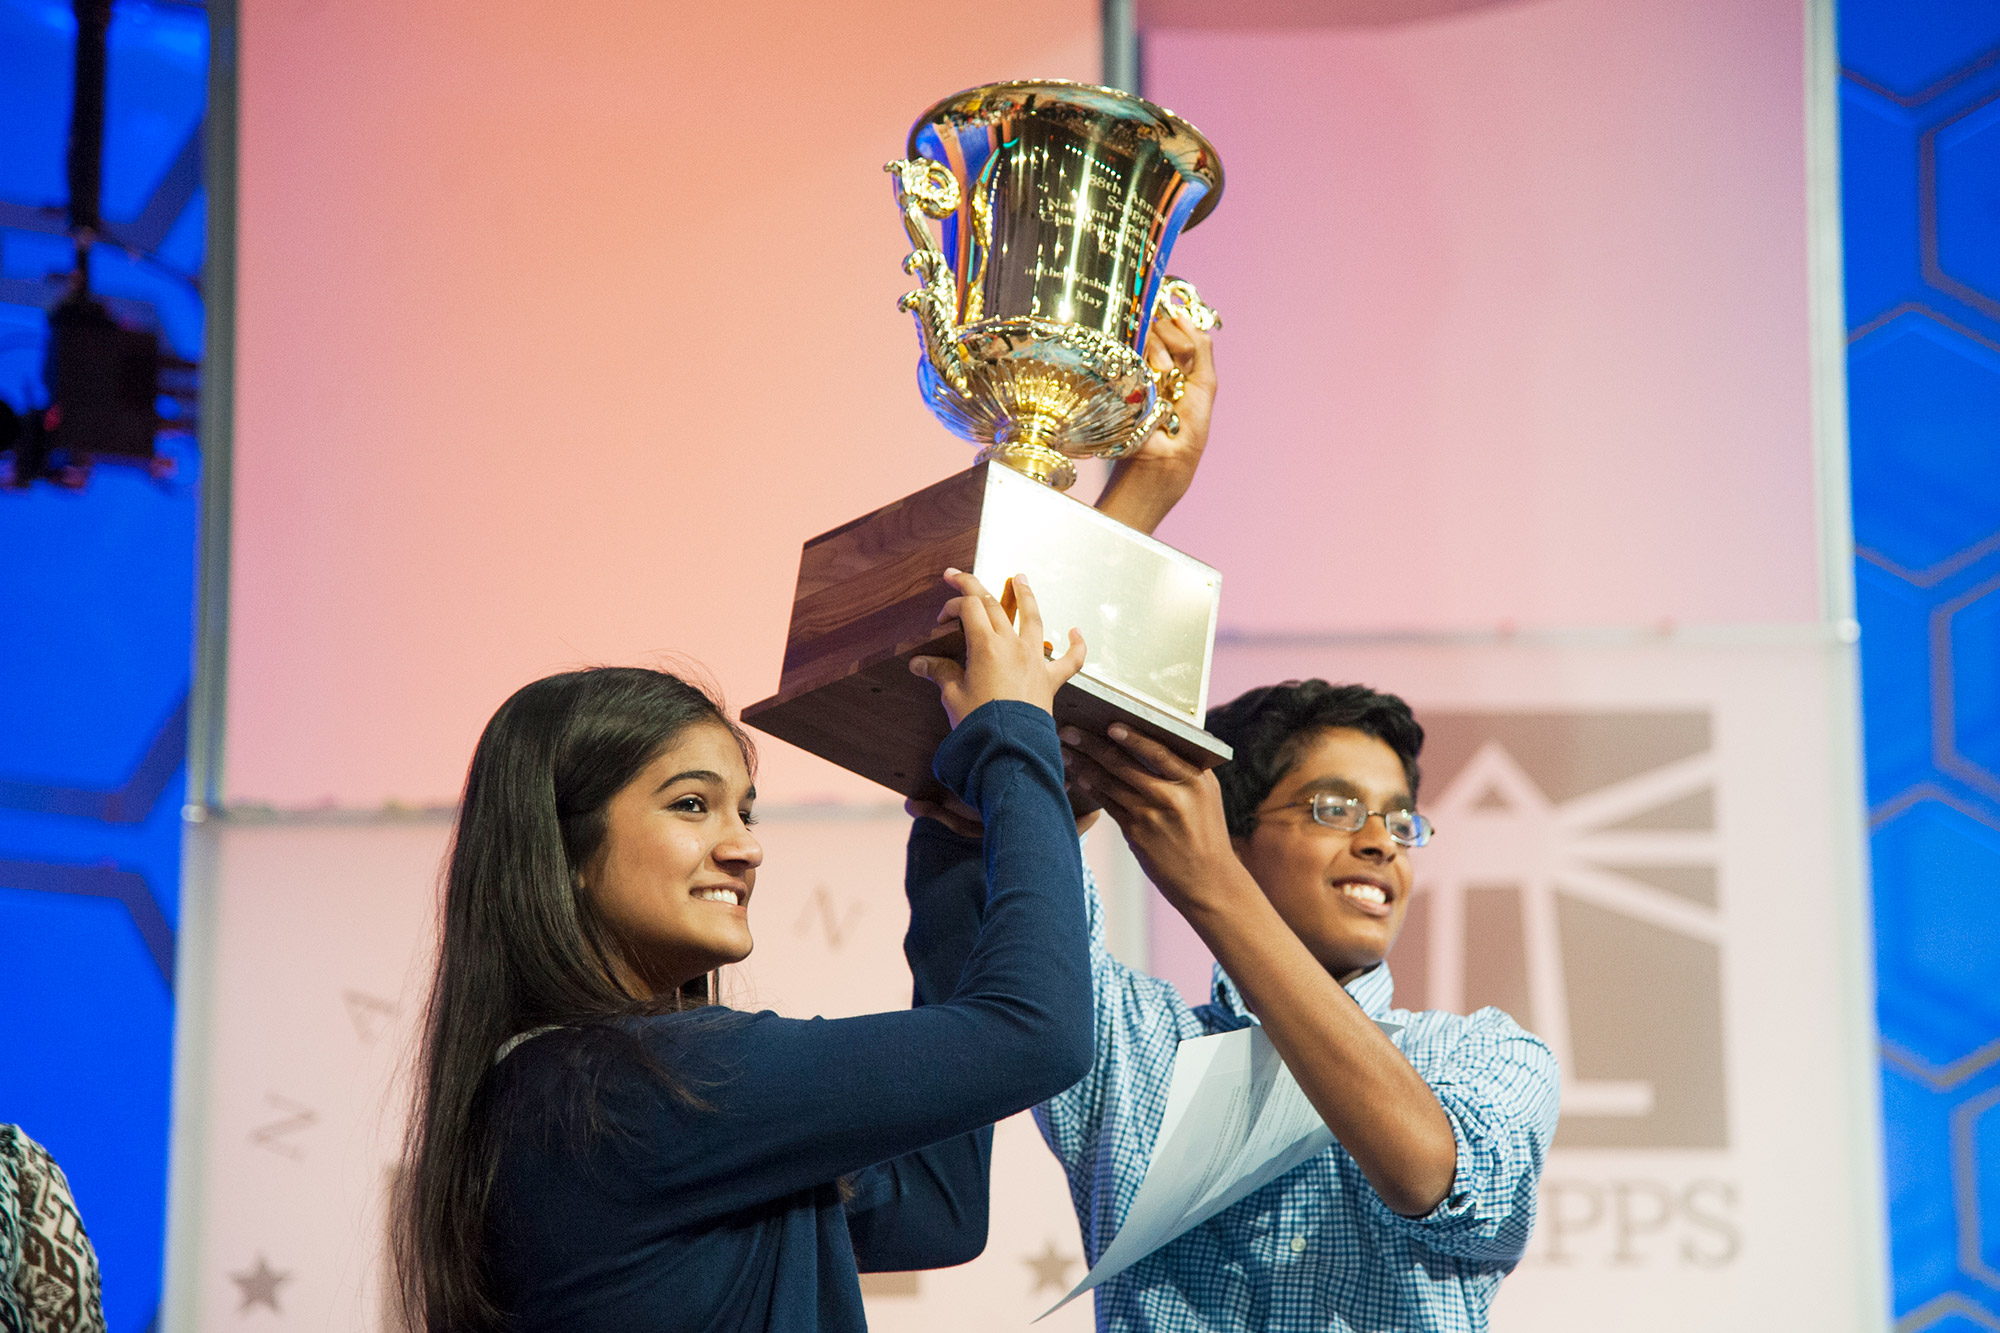 Spelling Bee contestants Vanya Shivashankar, 13, of Olathe, KS (90) and Gokul Venkatachalam, 14, of Chesterfield, MO (140) co-champions hoist the trophy during the final round of the Scripps National Spelling Bee May 28, 2015 at National Harbor, MD